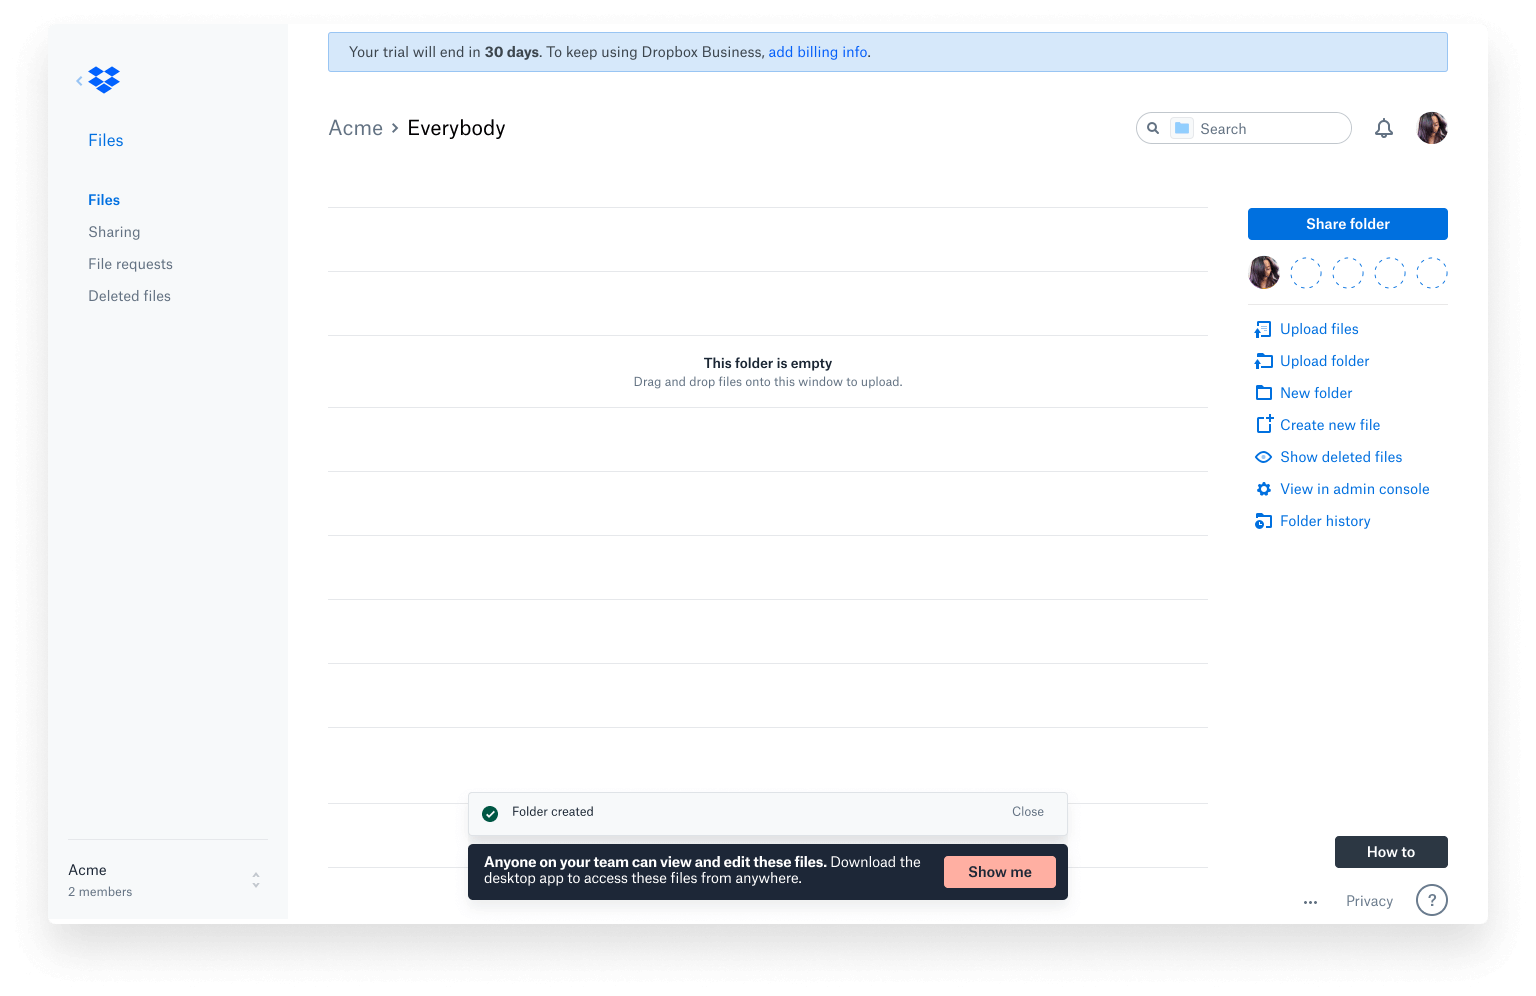 Website mockup - showing the final Rich Confirmation for user actions